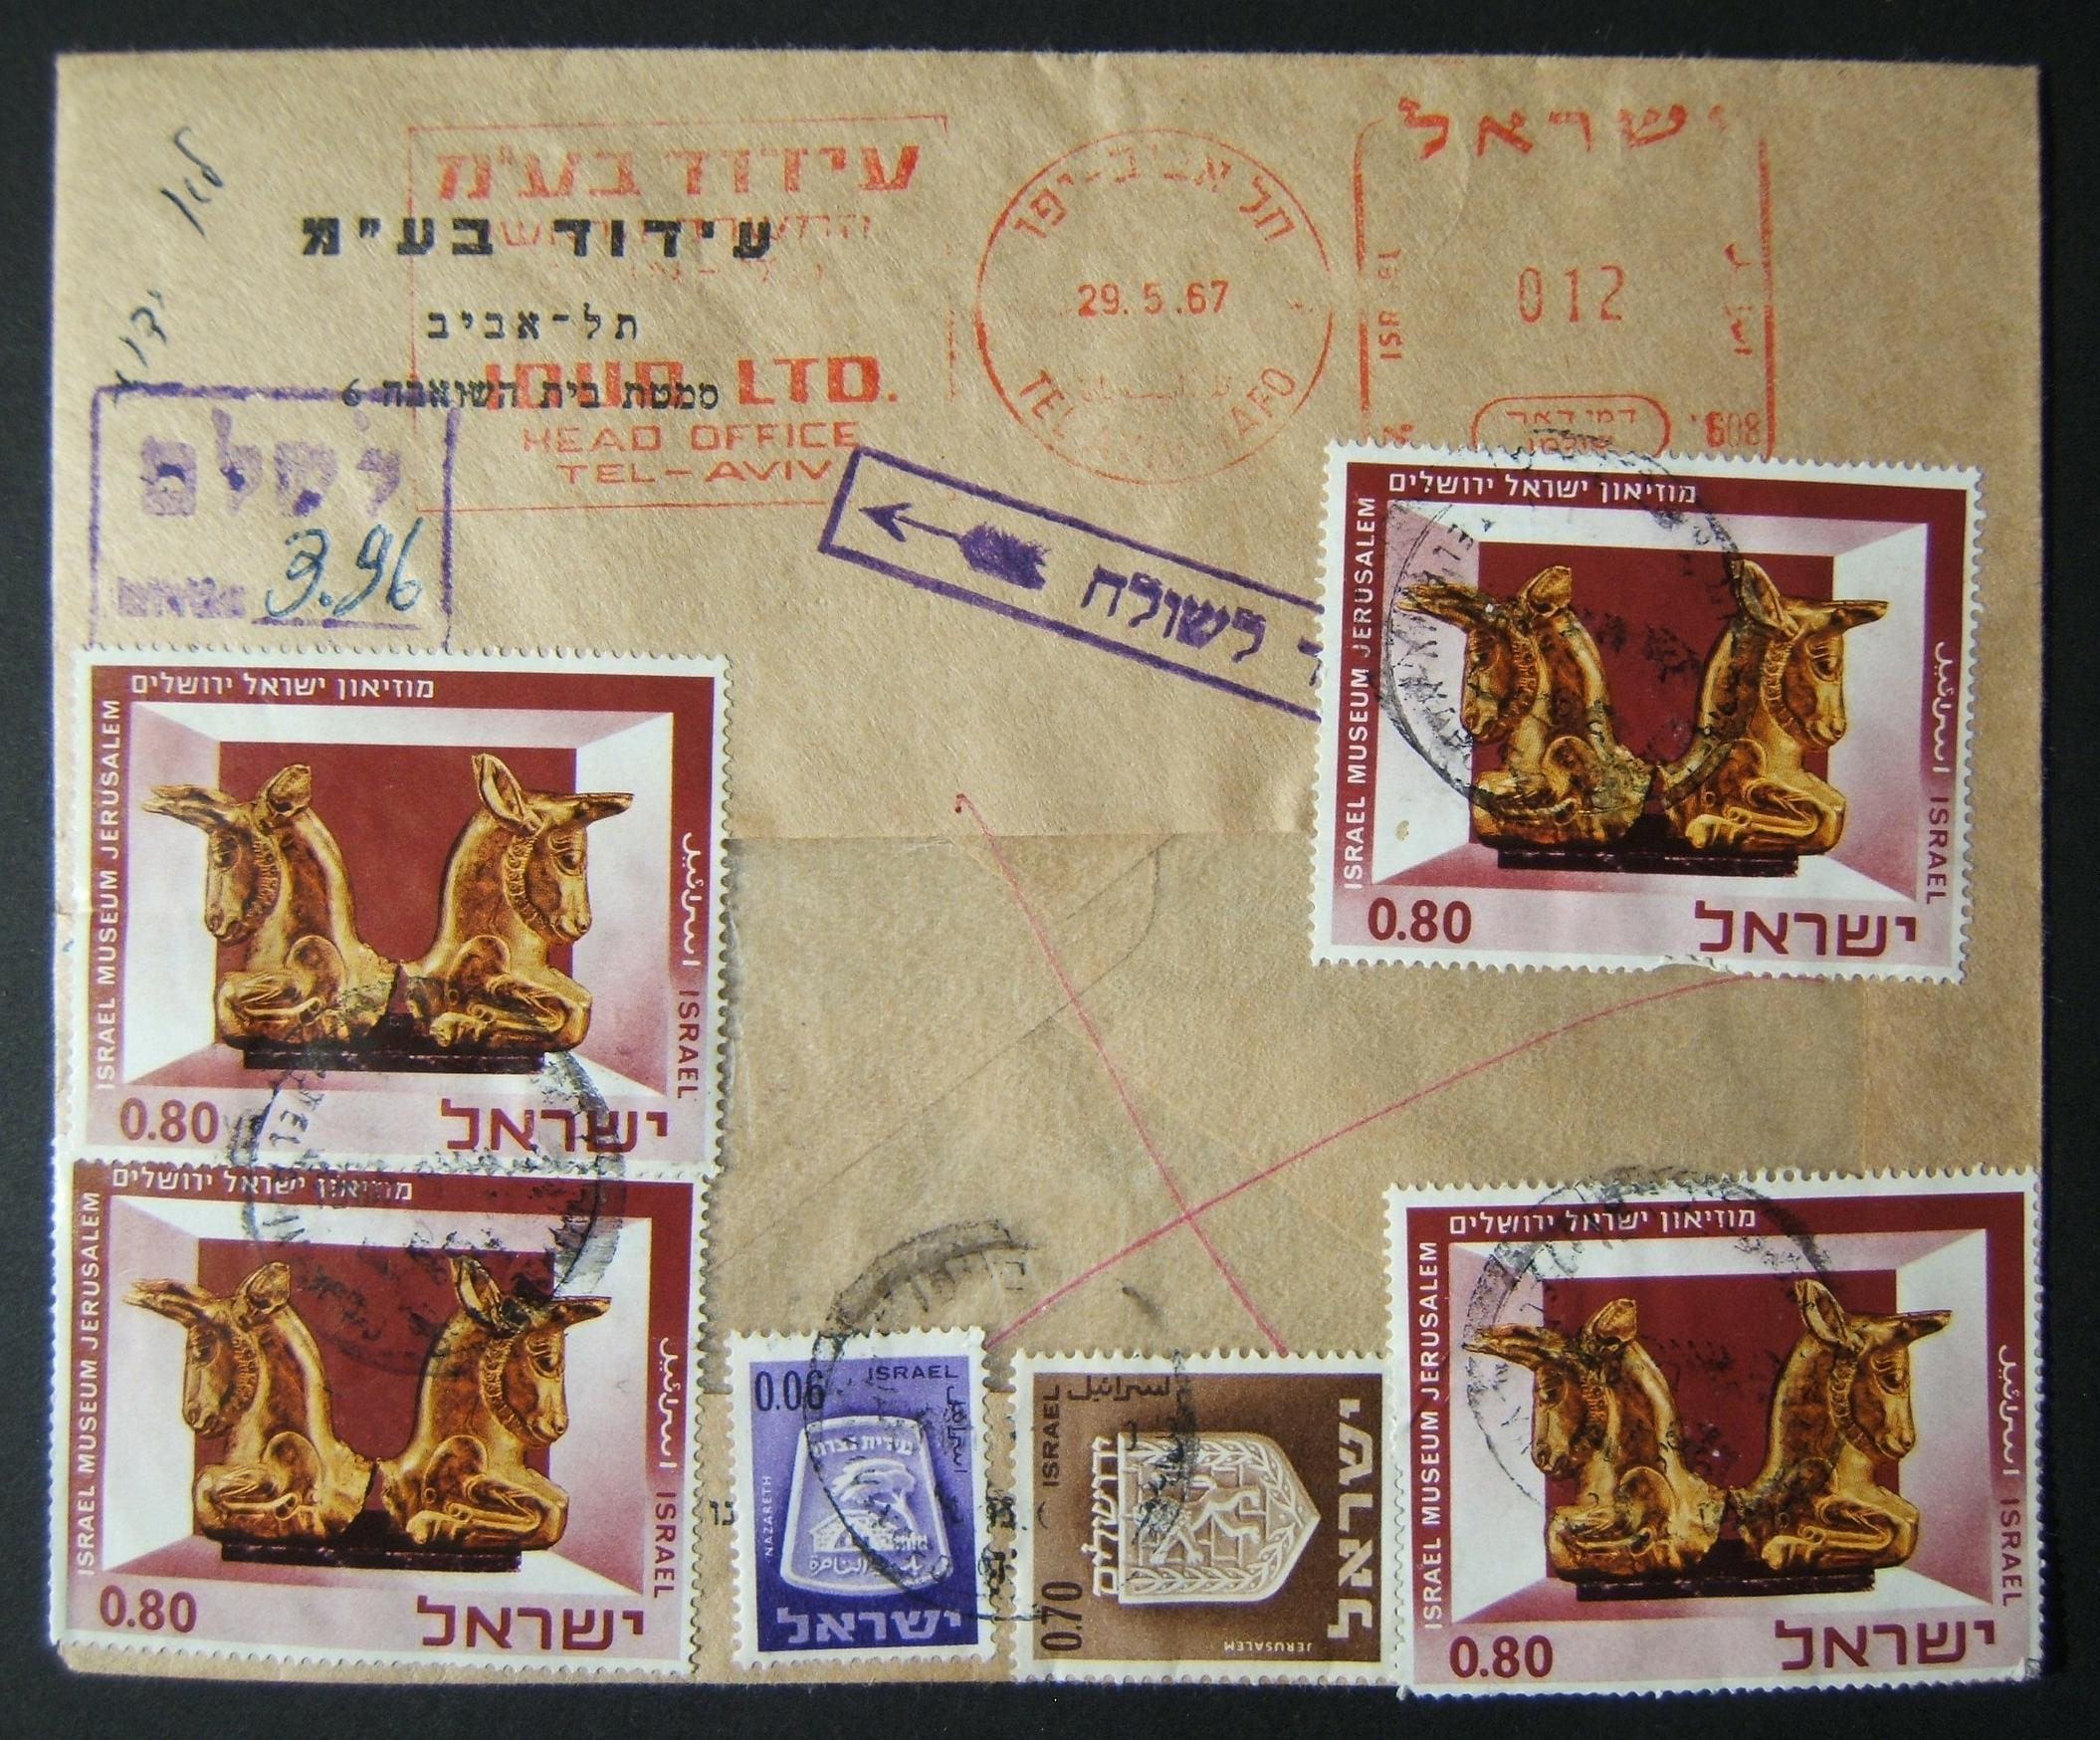 1967 eve 6-Day War domestic 'top of the pile' taxed franking: 29-5-67 printed matter cover ex TLV branch of Idud Ltd. and franked by meter payment at the DO-12 period 12 Ag PM rate